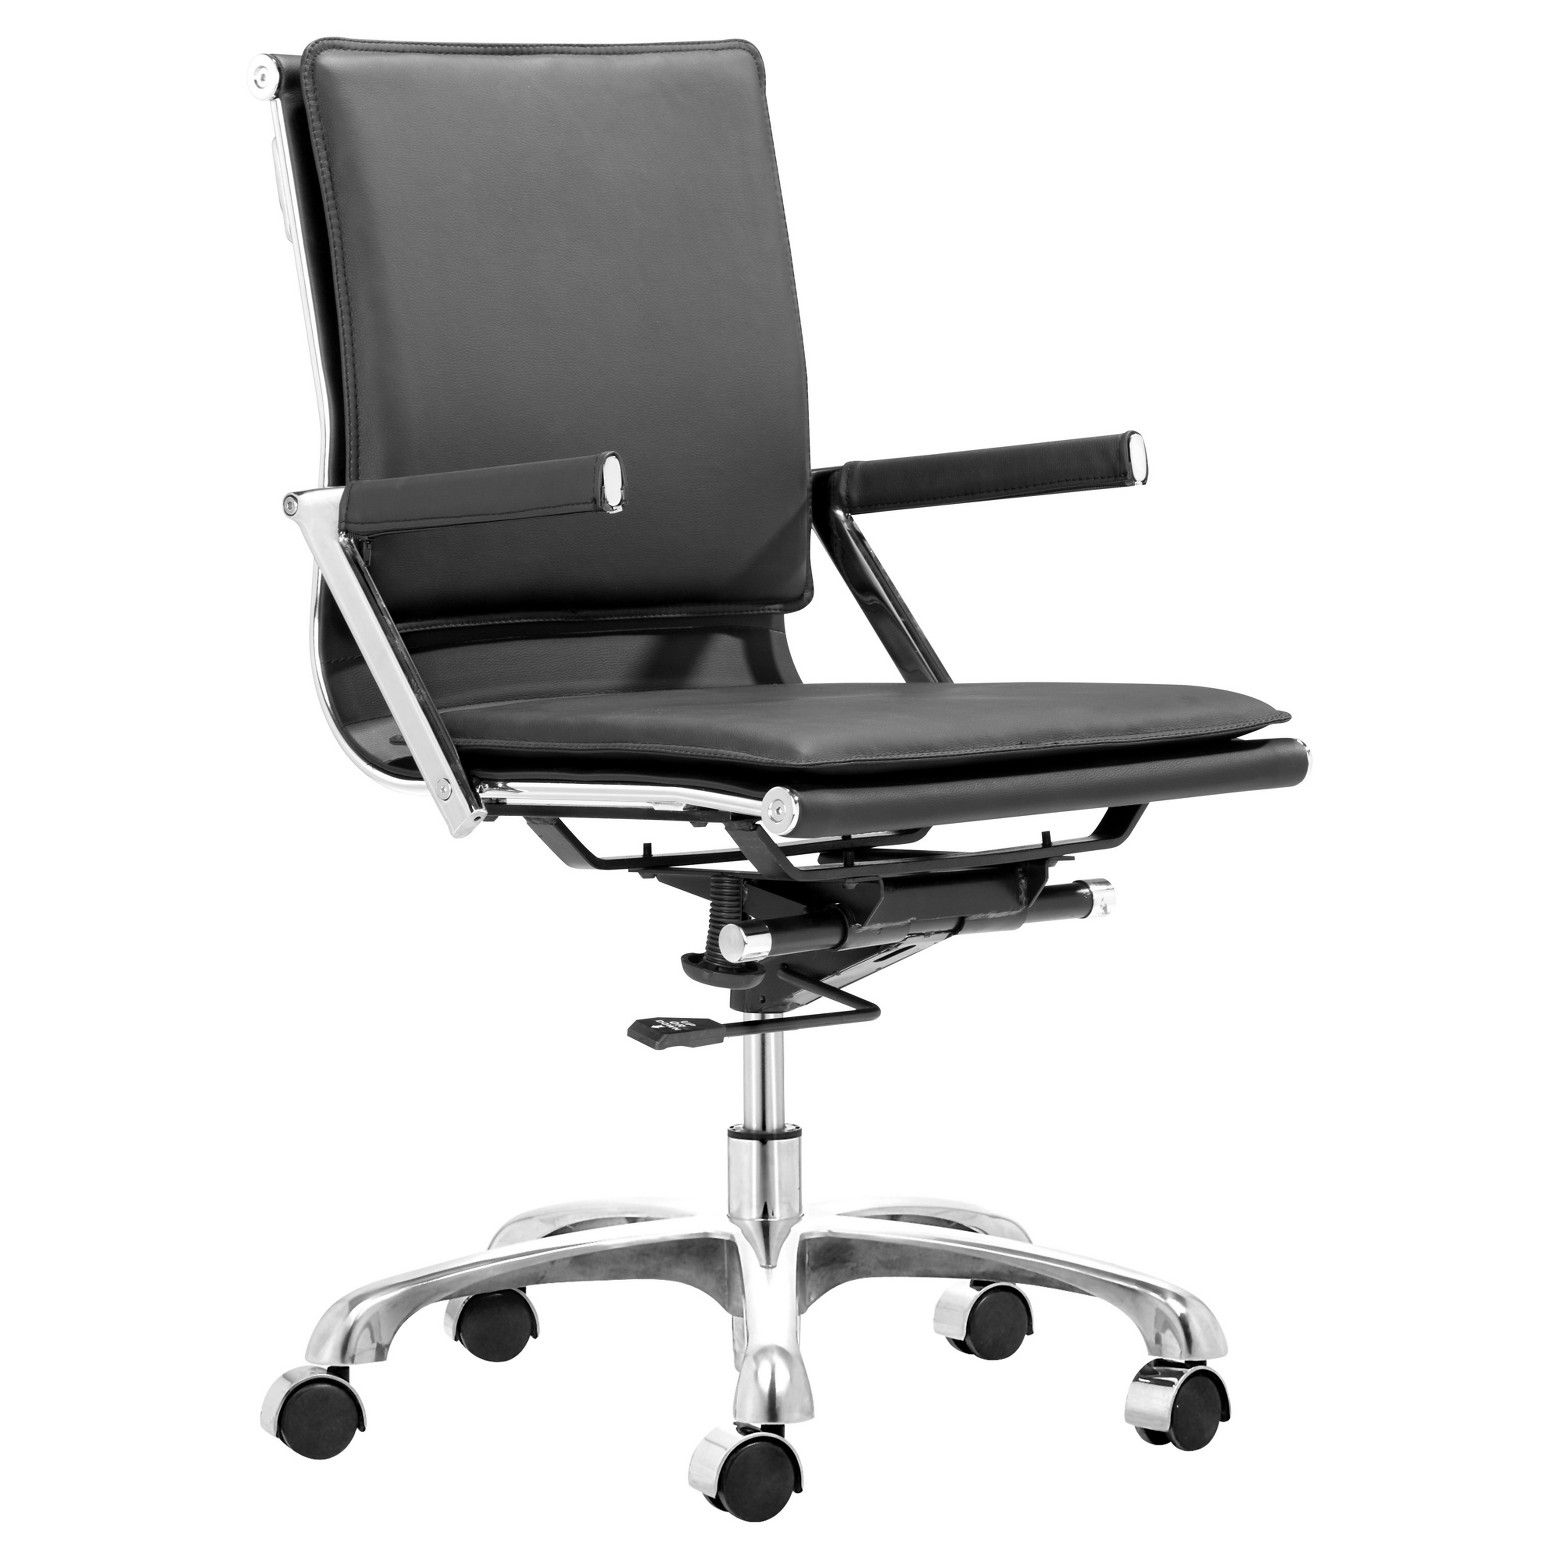 ZUO Ergonomic Upholstered fice Chair ZM Home